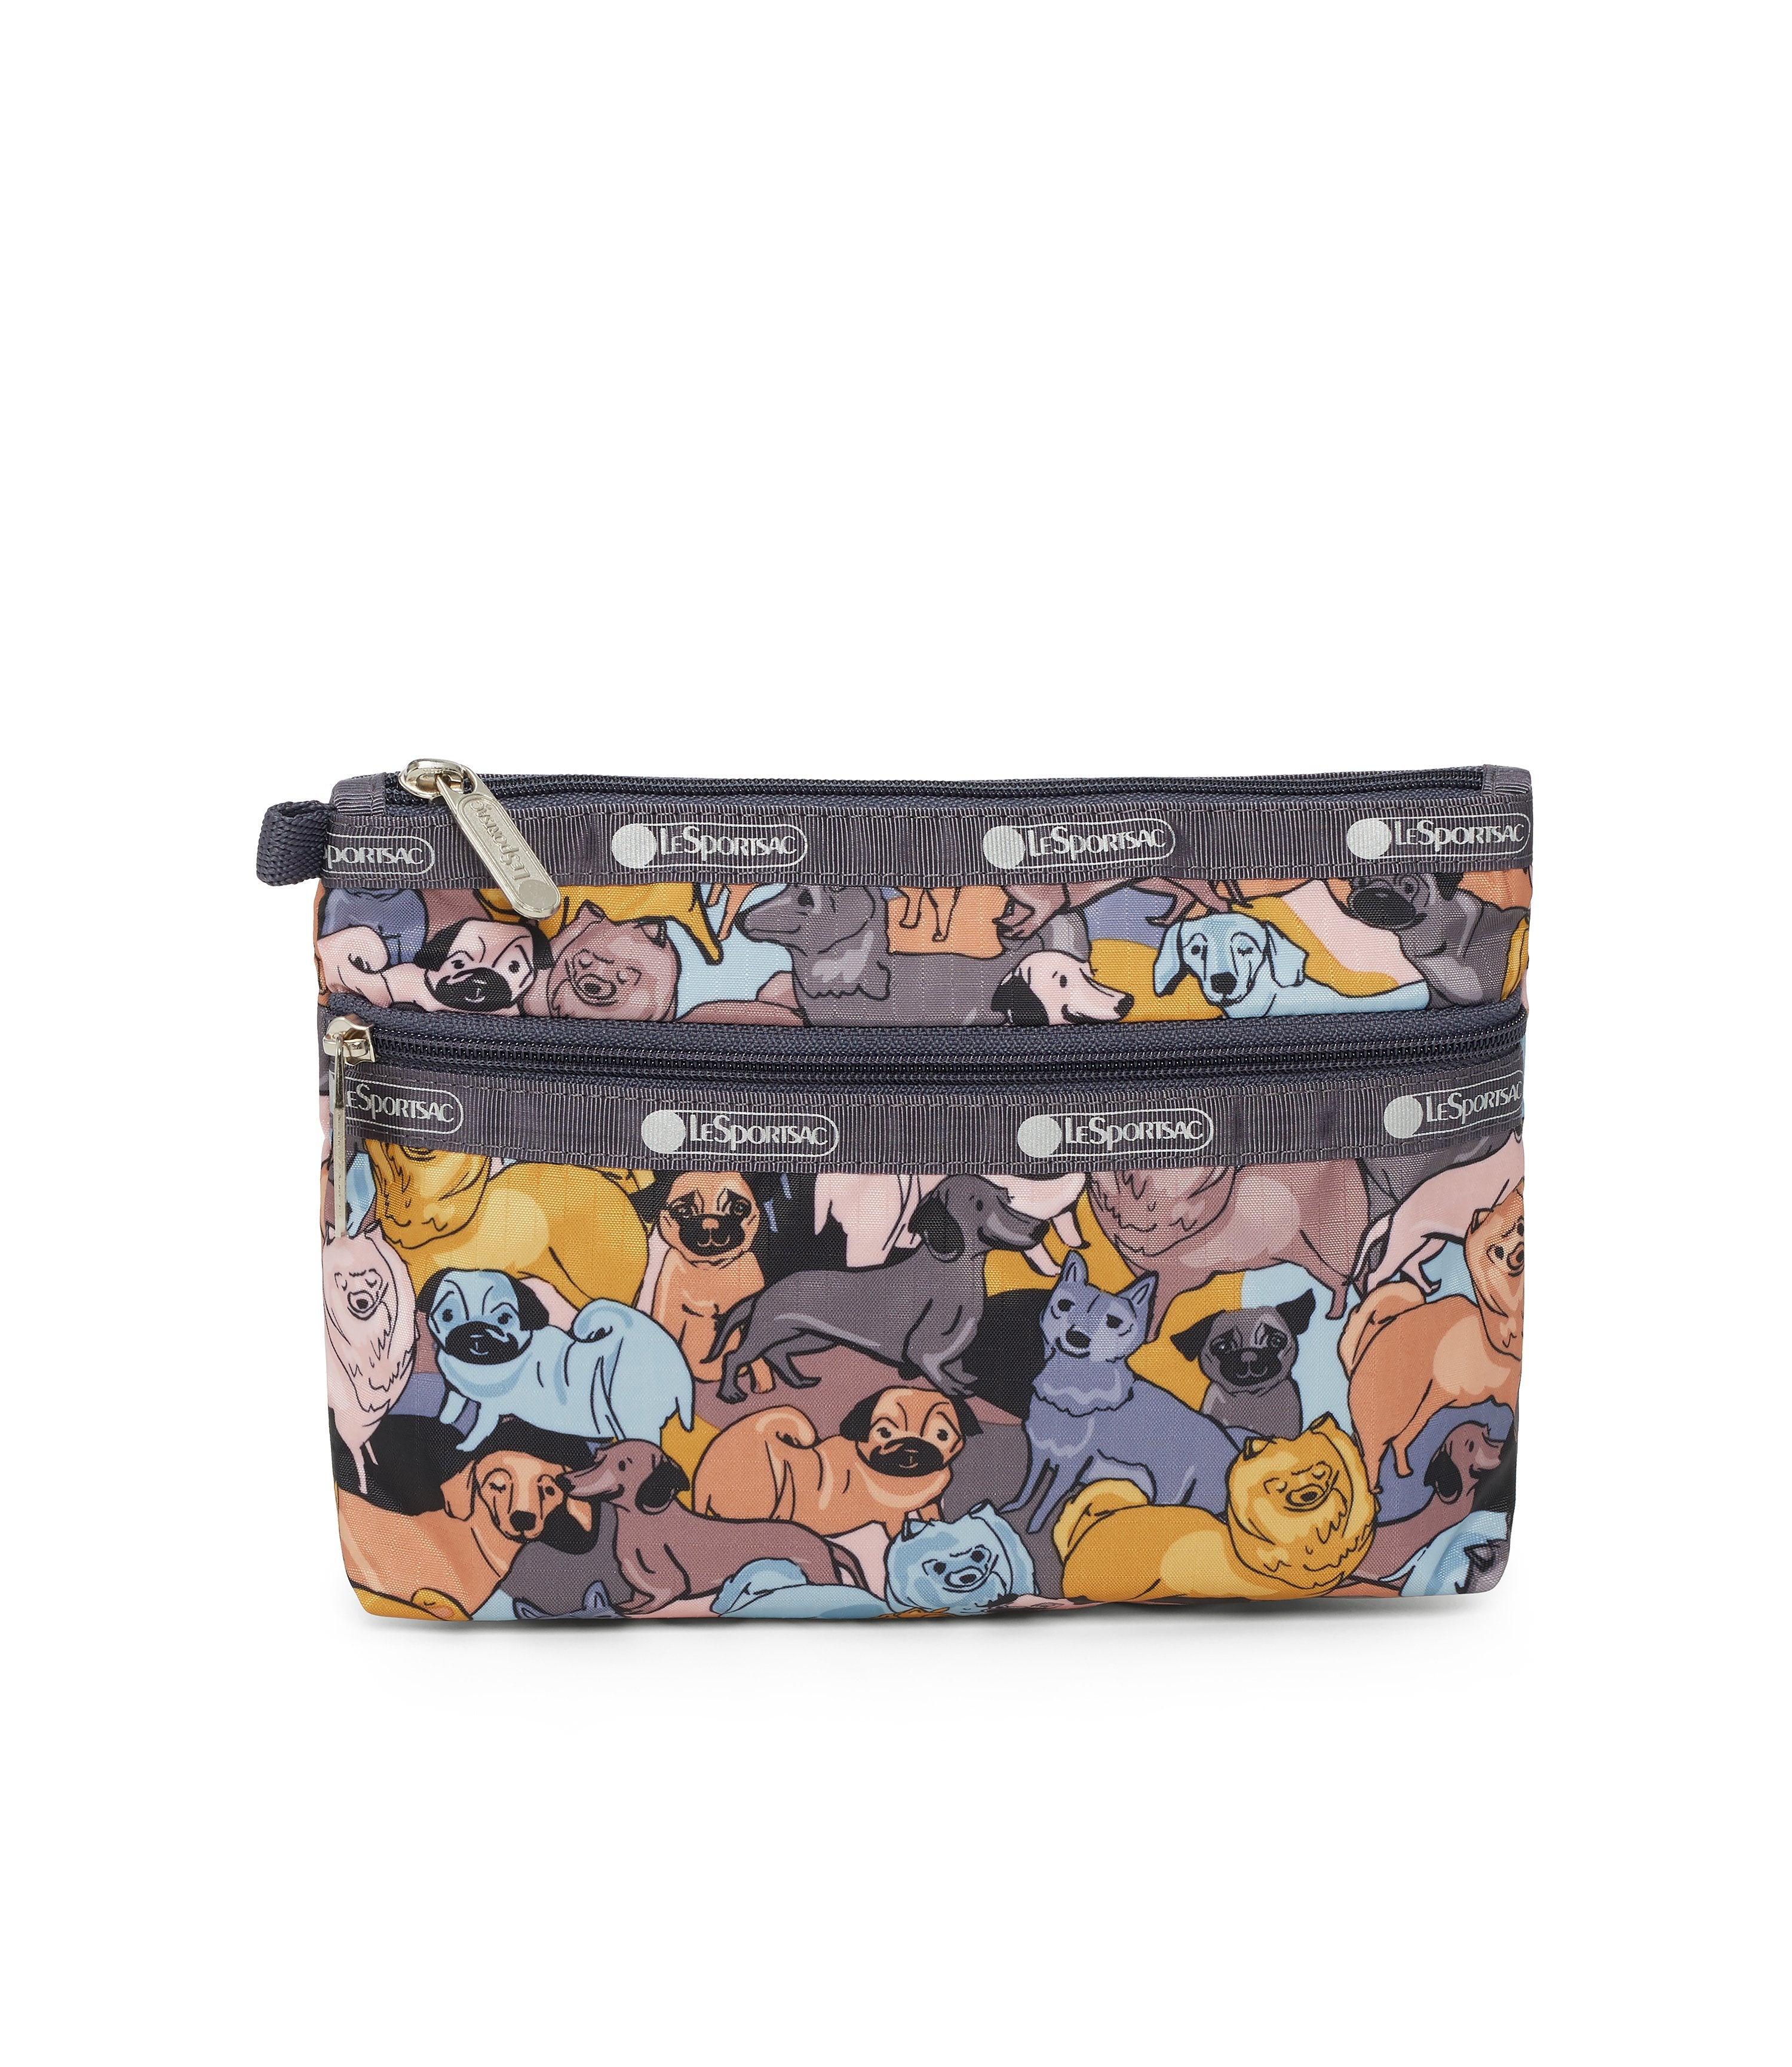 Cosmetic Clutch, Accessories and Cosmetic Bag, LeSportsac, Kon and Friends print